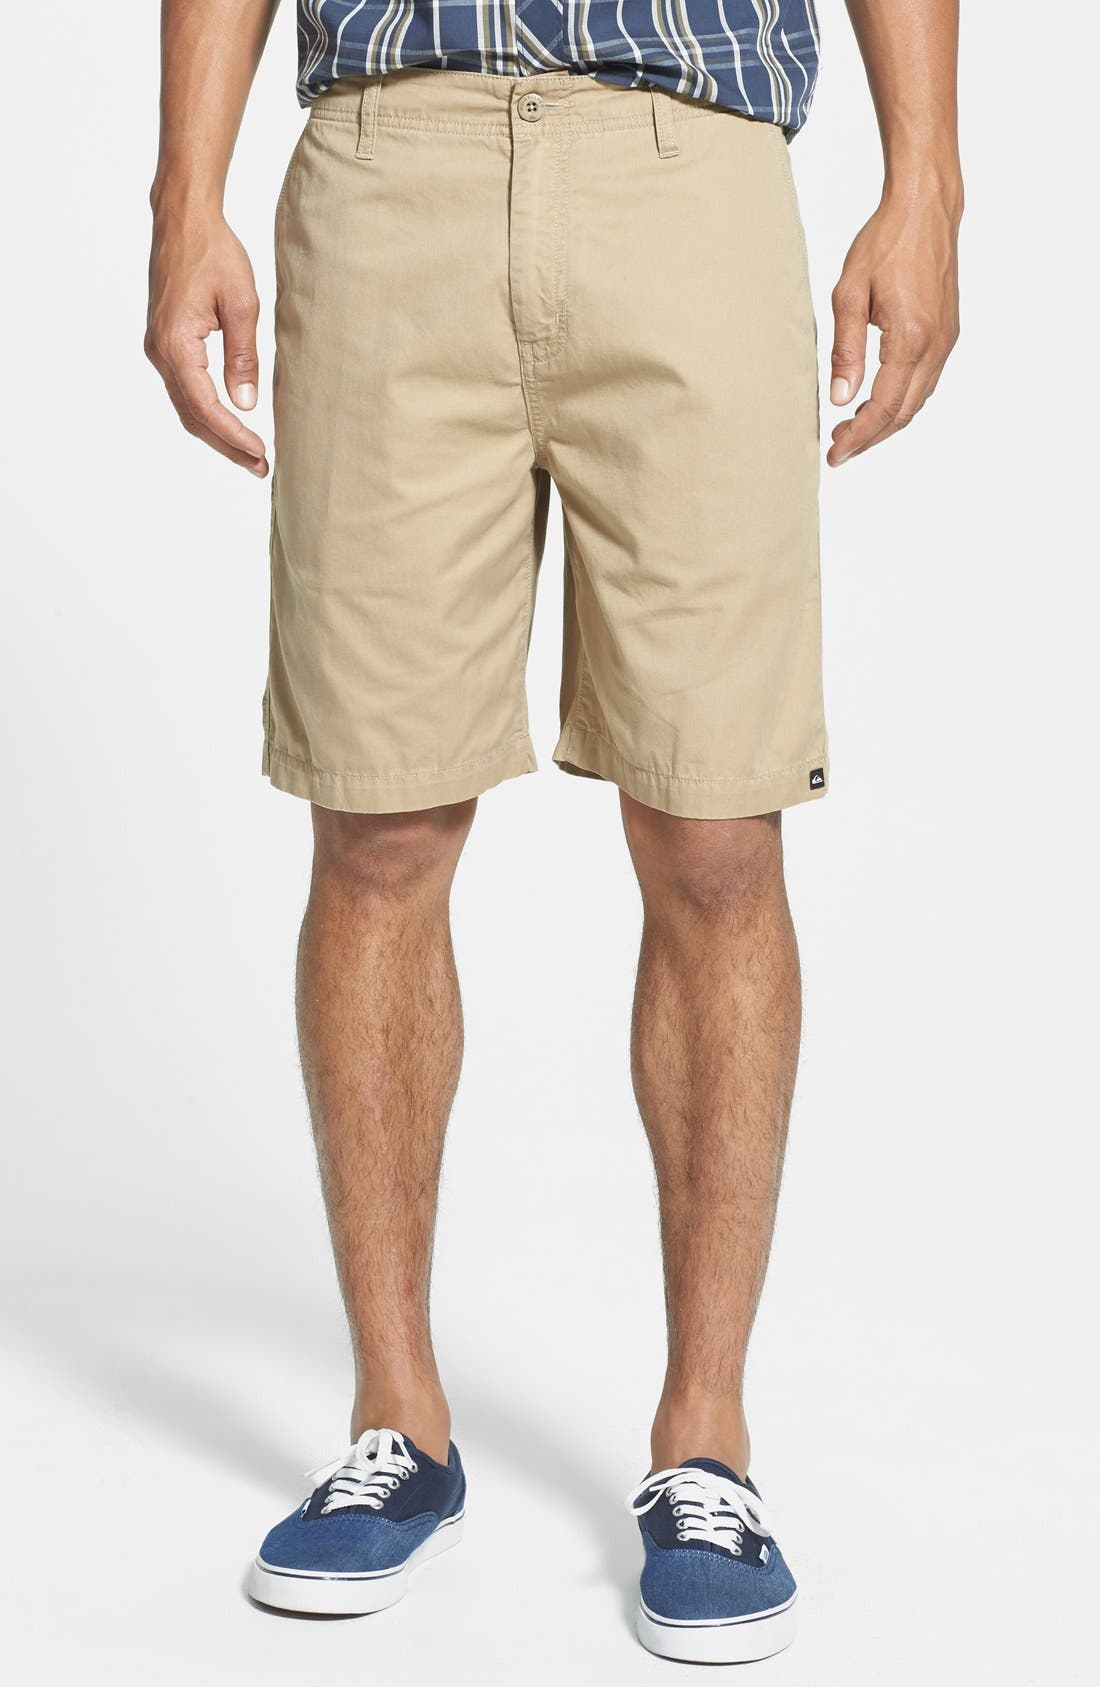 Alternate Image 1 Selected - Quiksilver 'Minor Road' Shorts